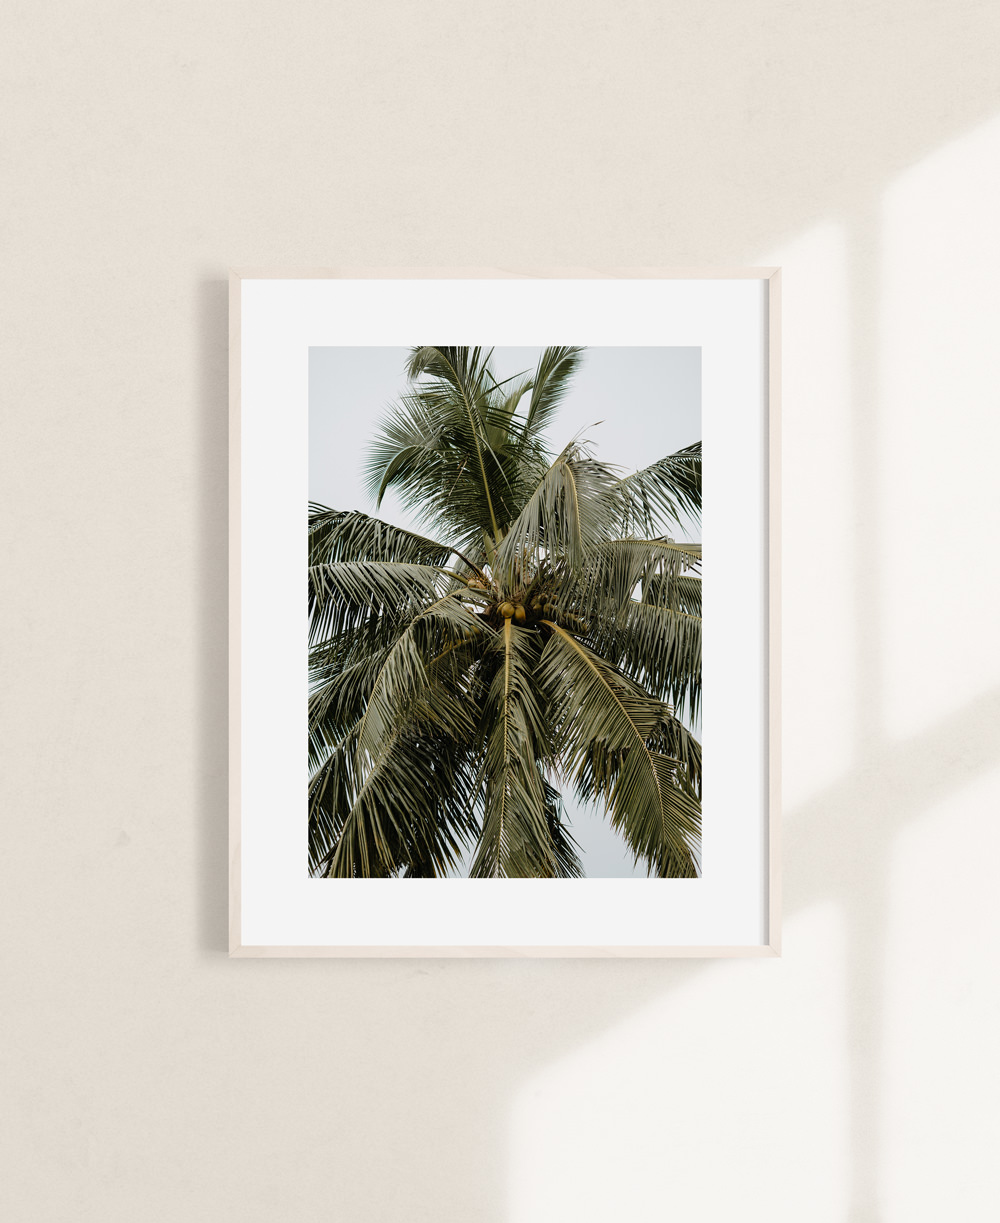 nicischwab-prints-017-palm leaves